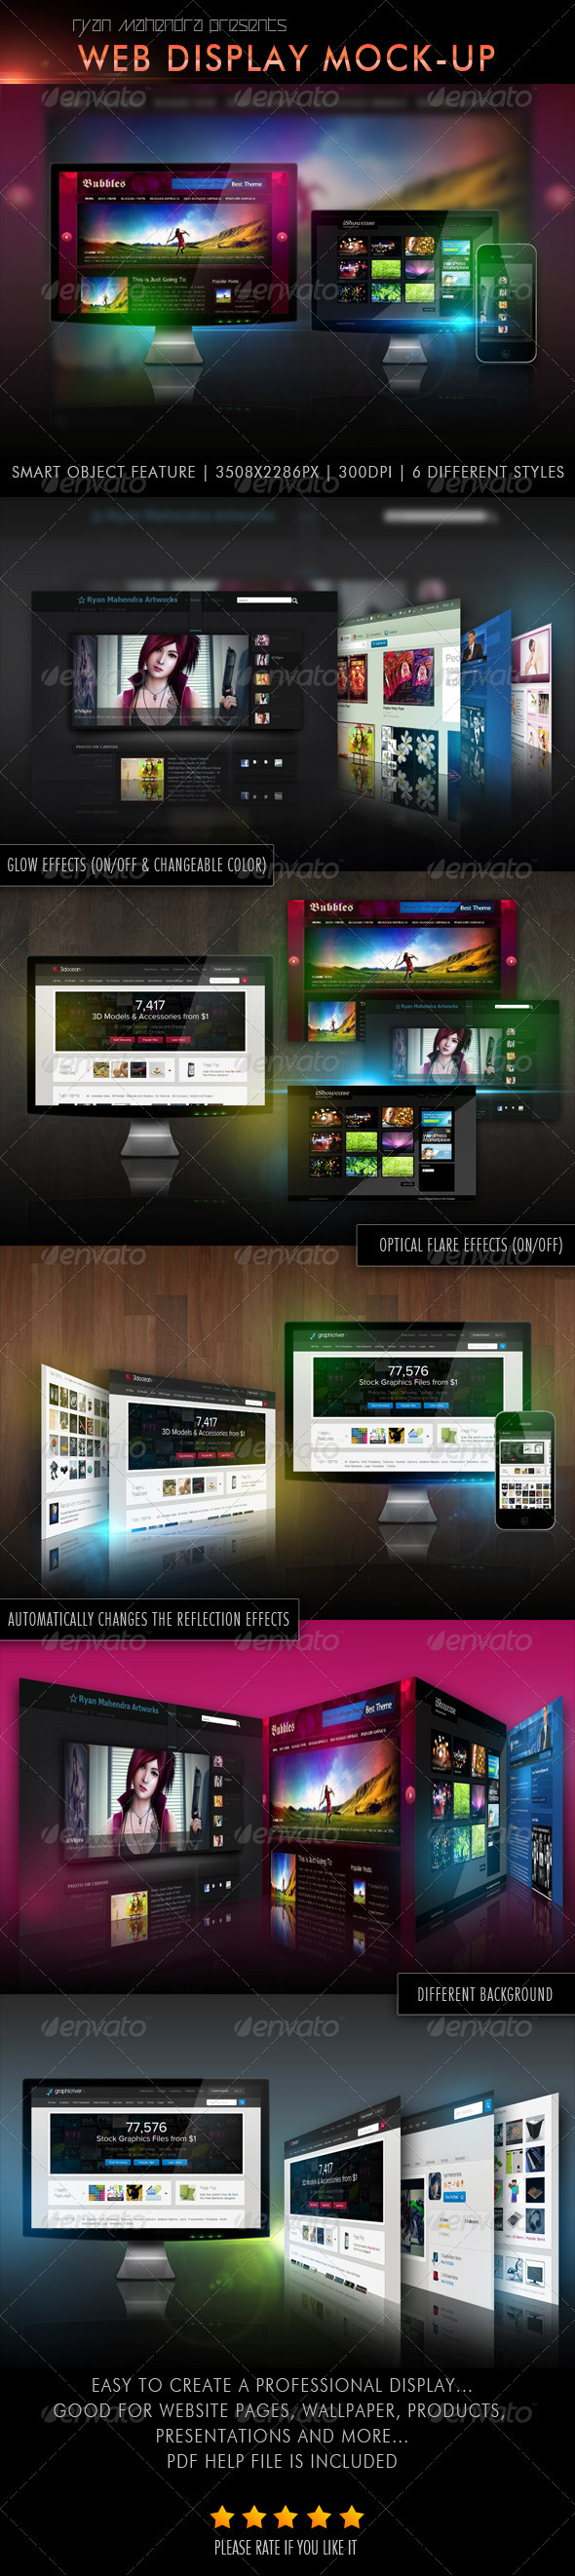 GraphicRiver Web Display Mock-Up 3357609